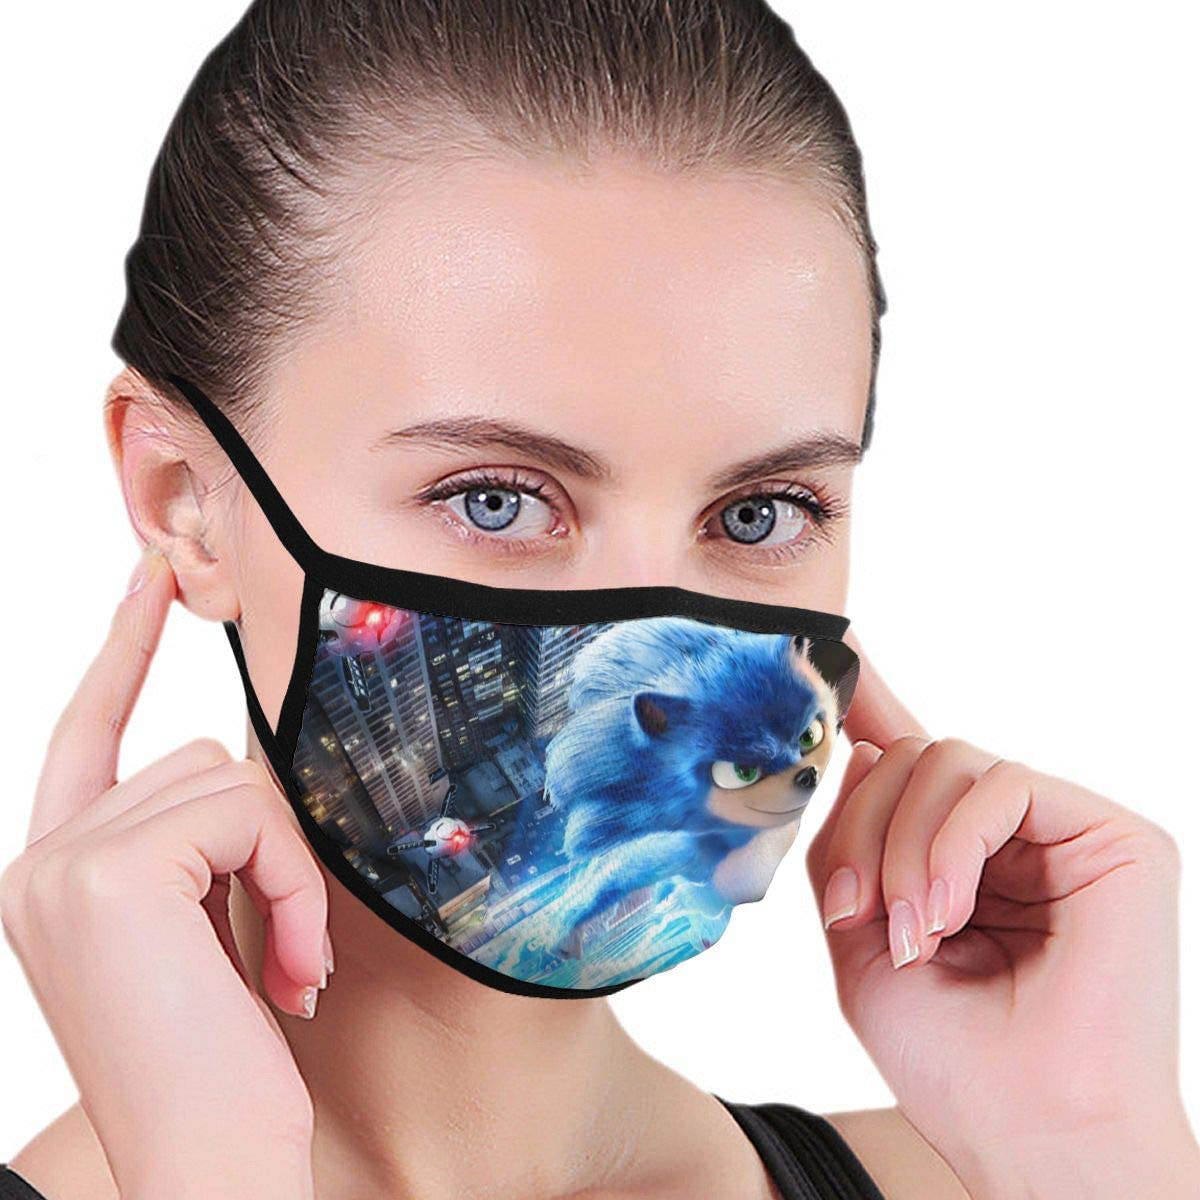 Amazon Com Px Shopping Street Washable Mouth Mask For Kids Teens Sonic The Hedgehog Cartoon Movie Poster Dust Masks With Elastic Ear Loops Hypoallergenic Cycling Winter Cold 80s 90s Warm Masks